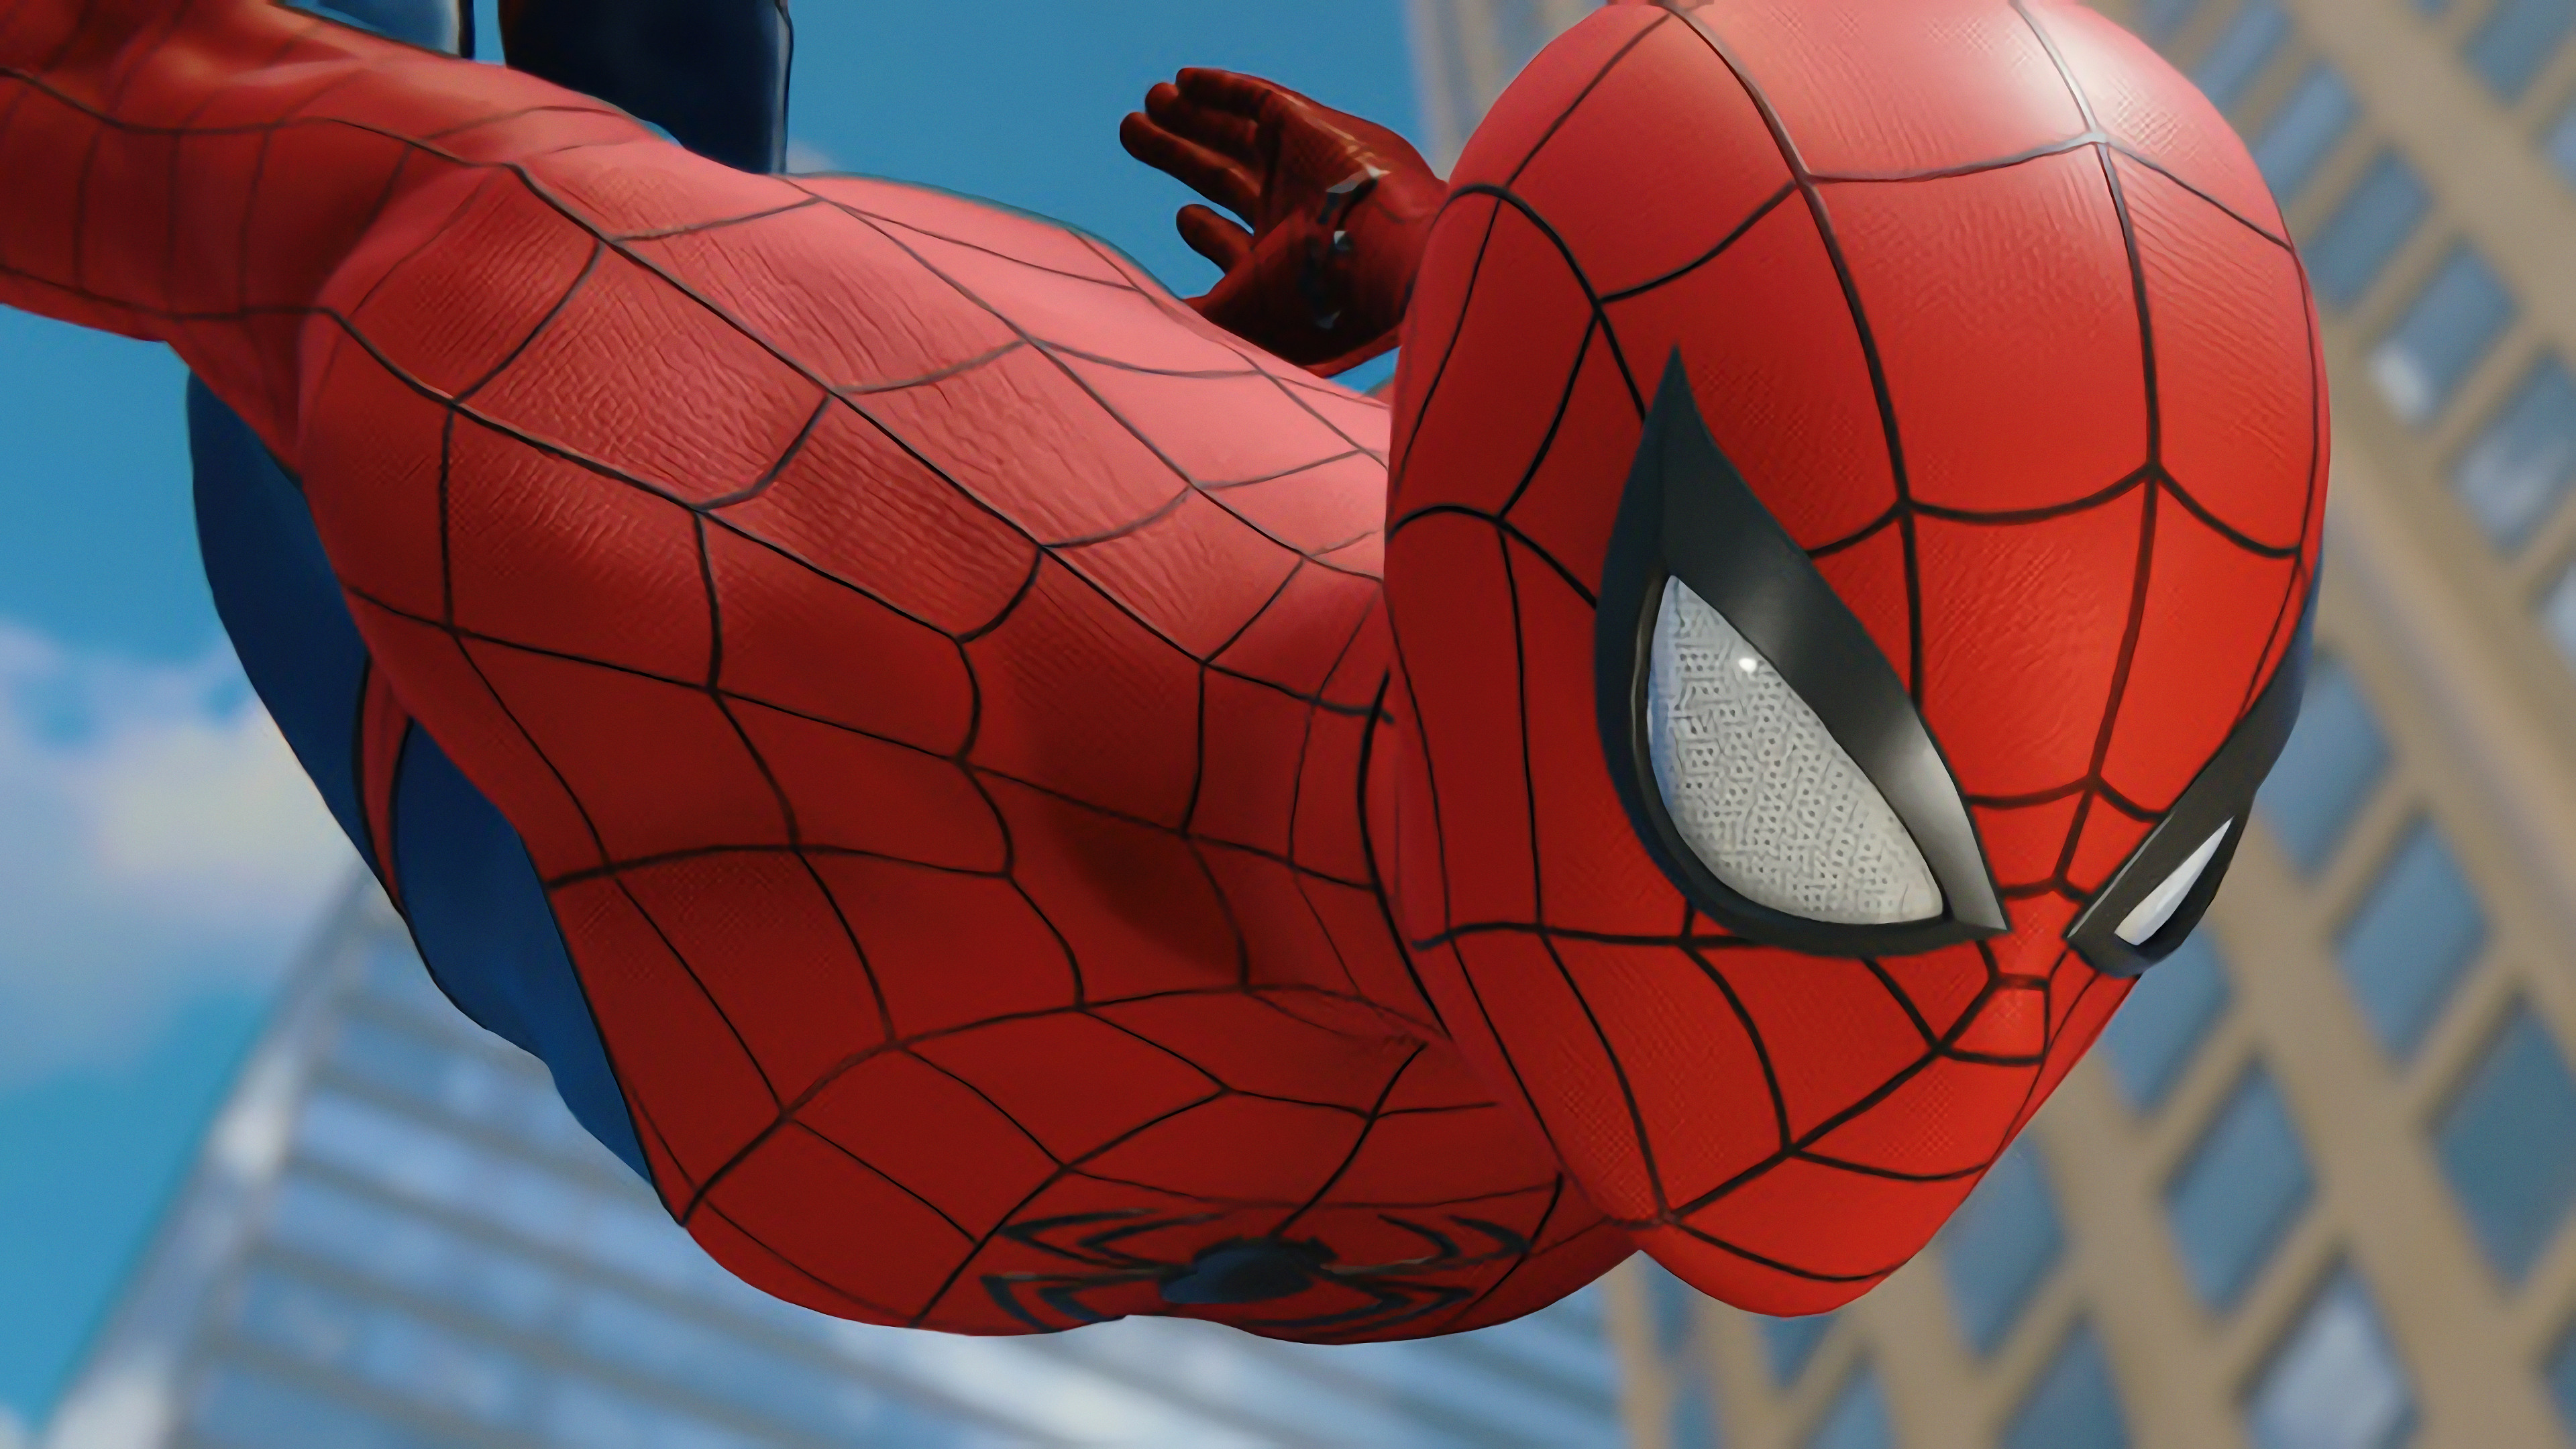 Cute Cartoon Hd Wallpapers For Android Spiderman 4k Game Superheroes Wallpapers Spiderman